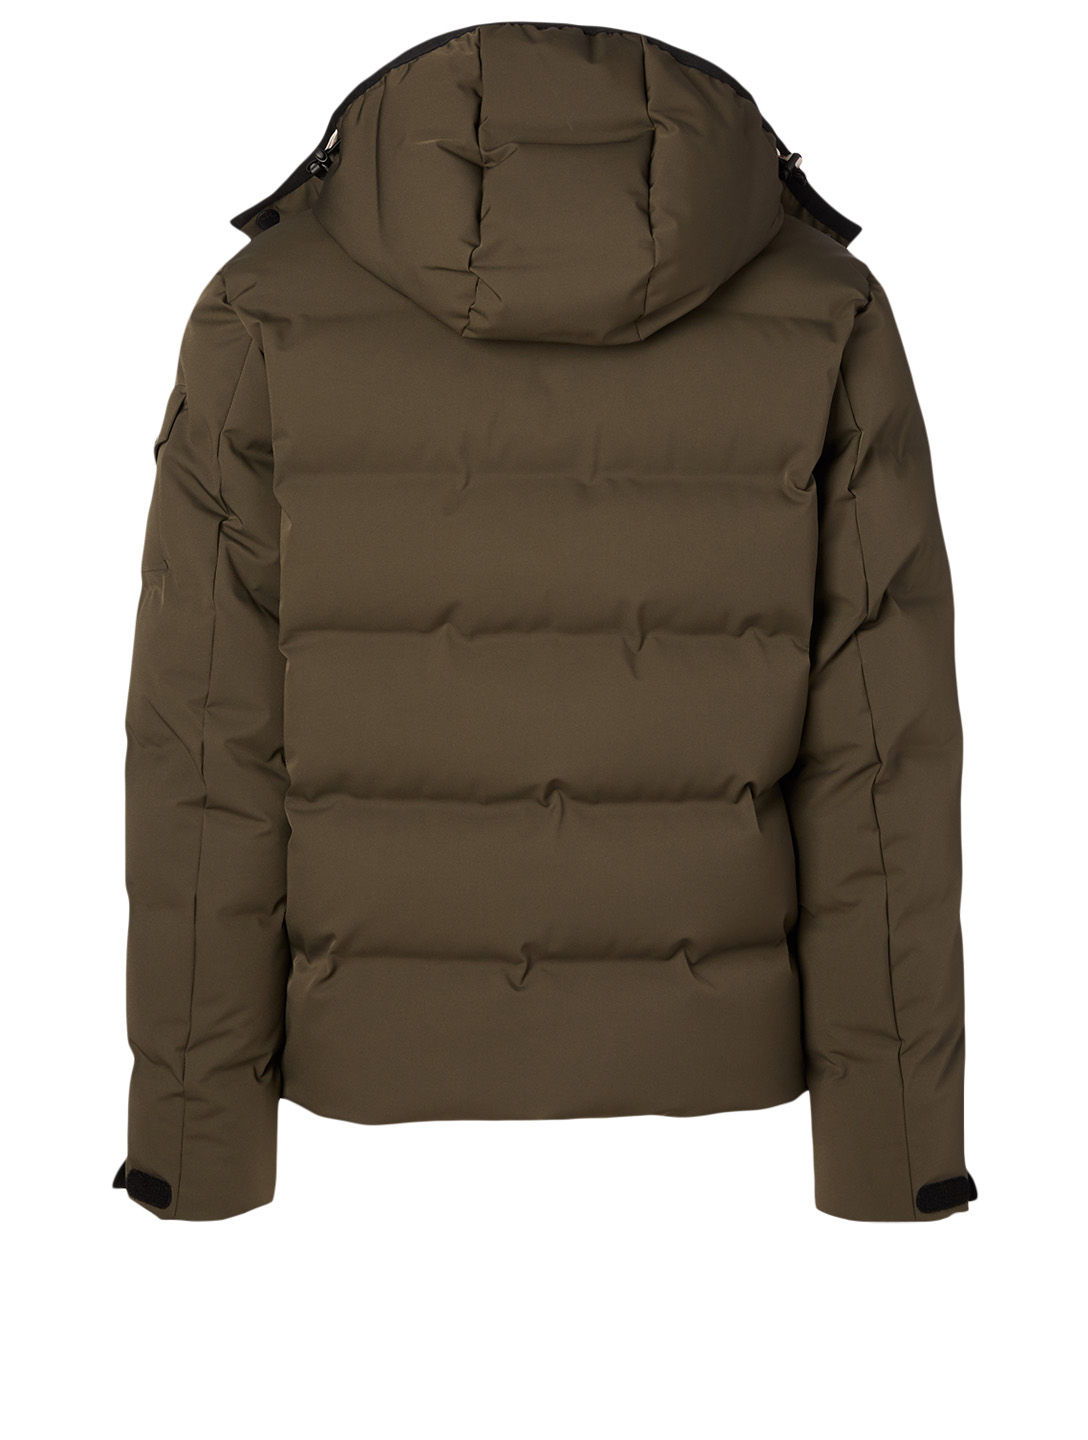 MONCLER GRENOBLE Montgetech Down Jacket Men's Green